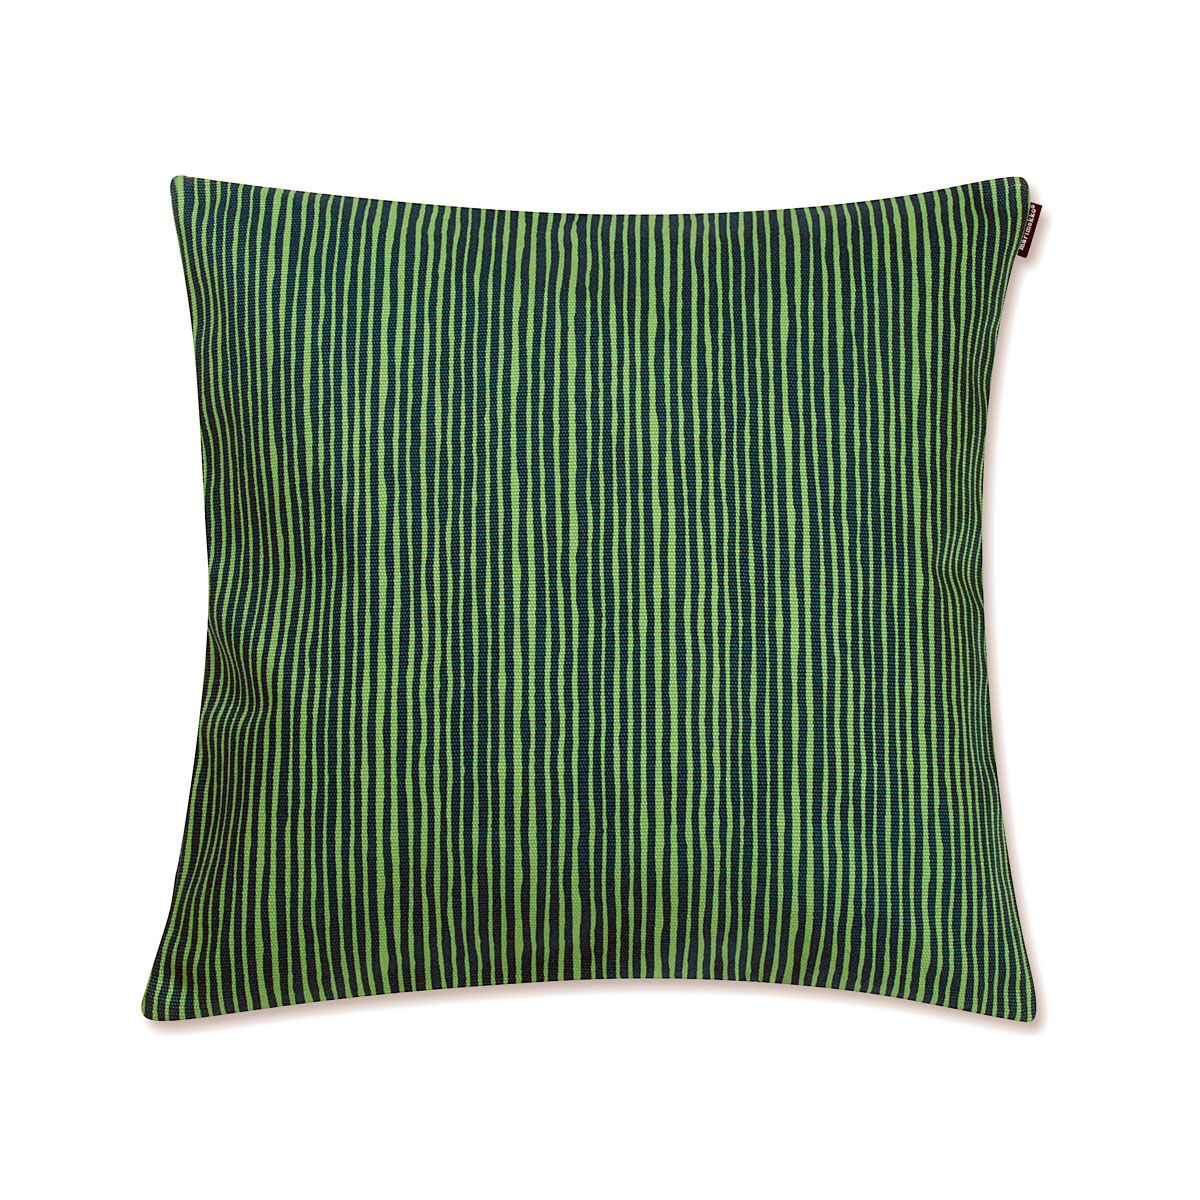 Small Green Throw Pillow : Marimekko Varvunraita Green Heavyweight Small Throw Pillow - Marimekko Fabric & Throw Pillow Sale